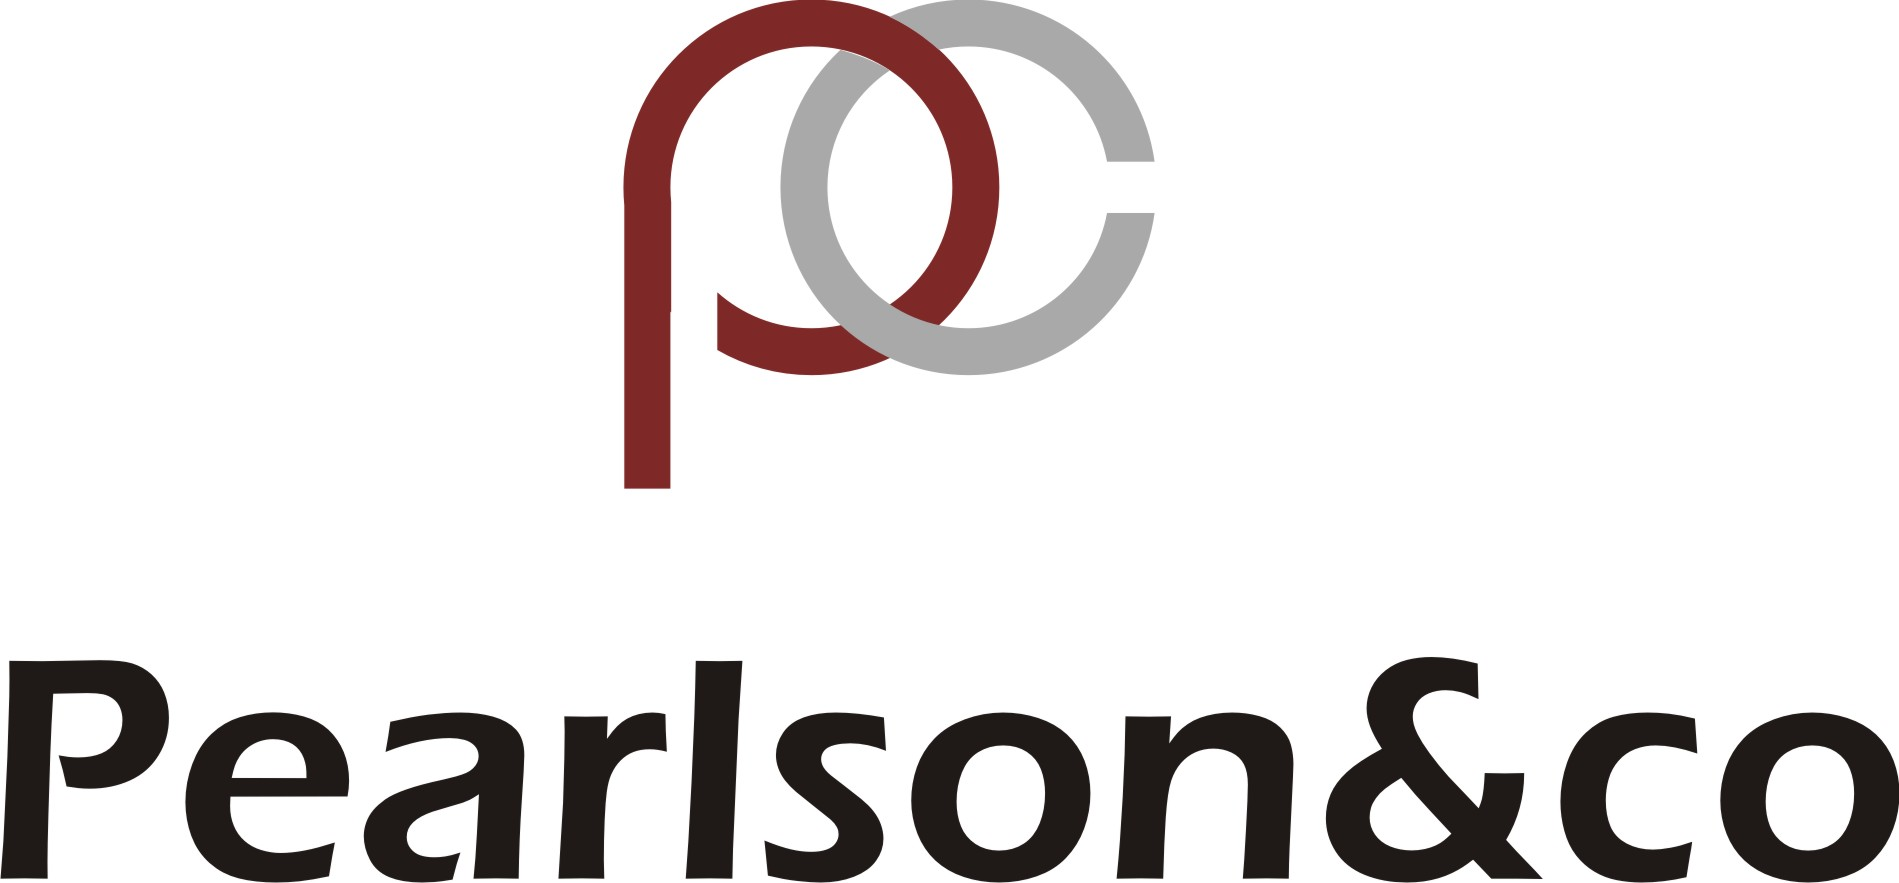 Pearlson and CO - Aerocon products |  Fenesta building systems | in Chennai & India|Aerocon Chennai|Aerocon Dealers in Chennai | fenesta upvc windows| Fenesta Windows and Doors Chennai|Fenesta dealers Chennai